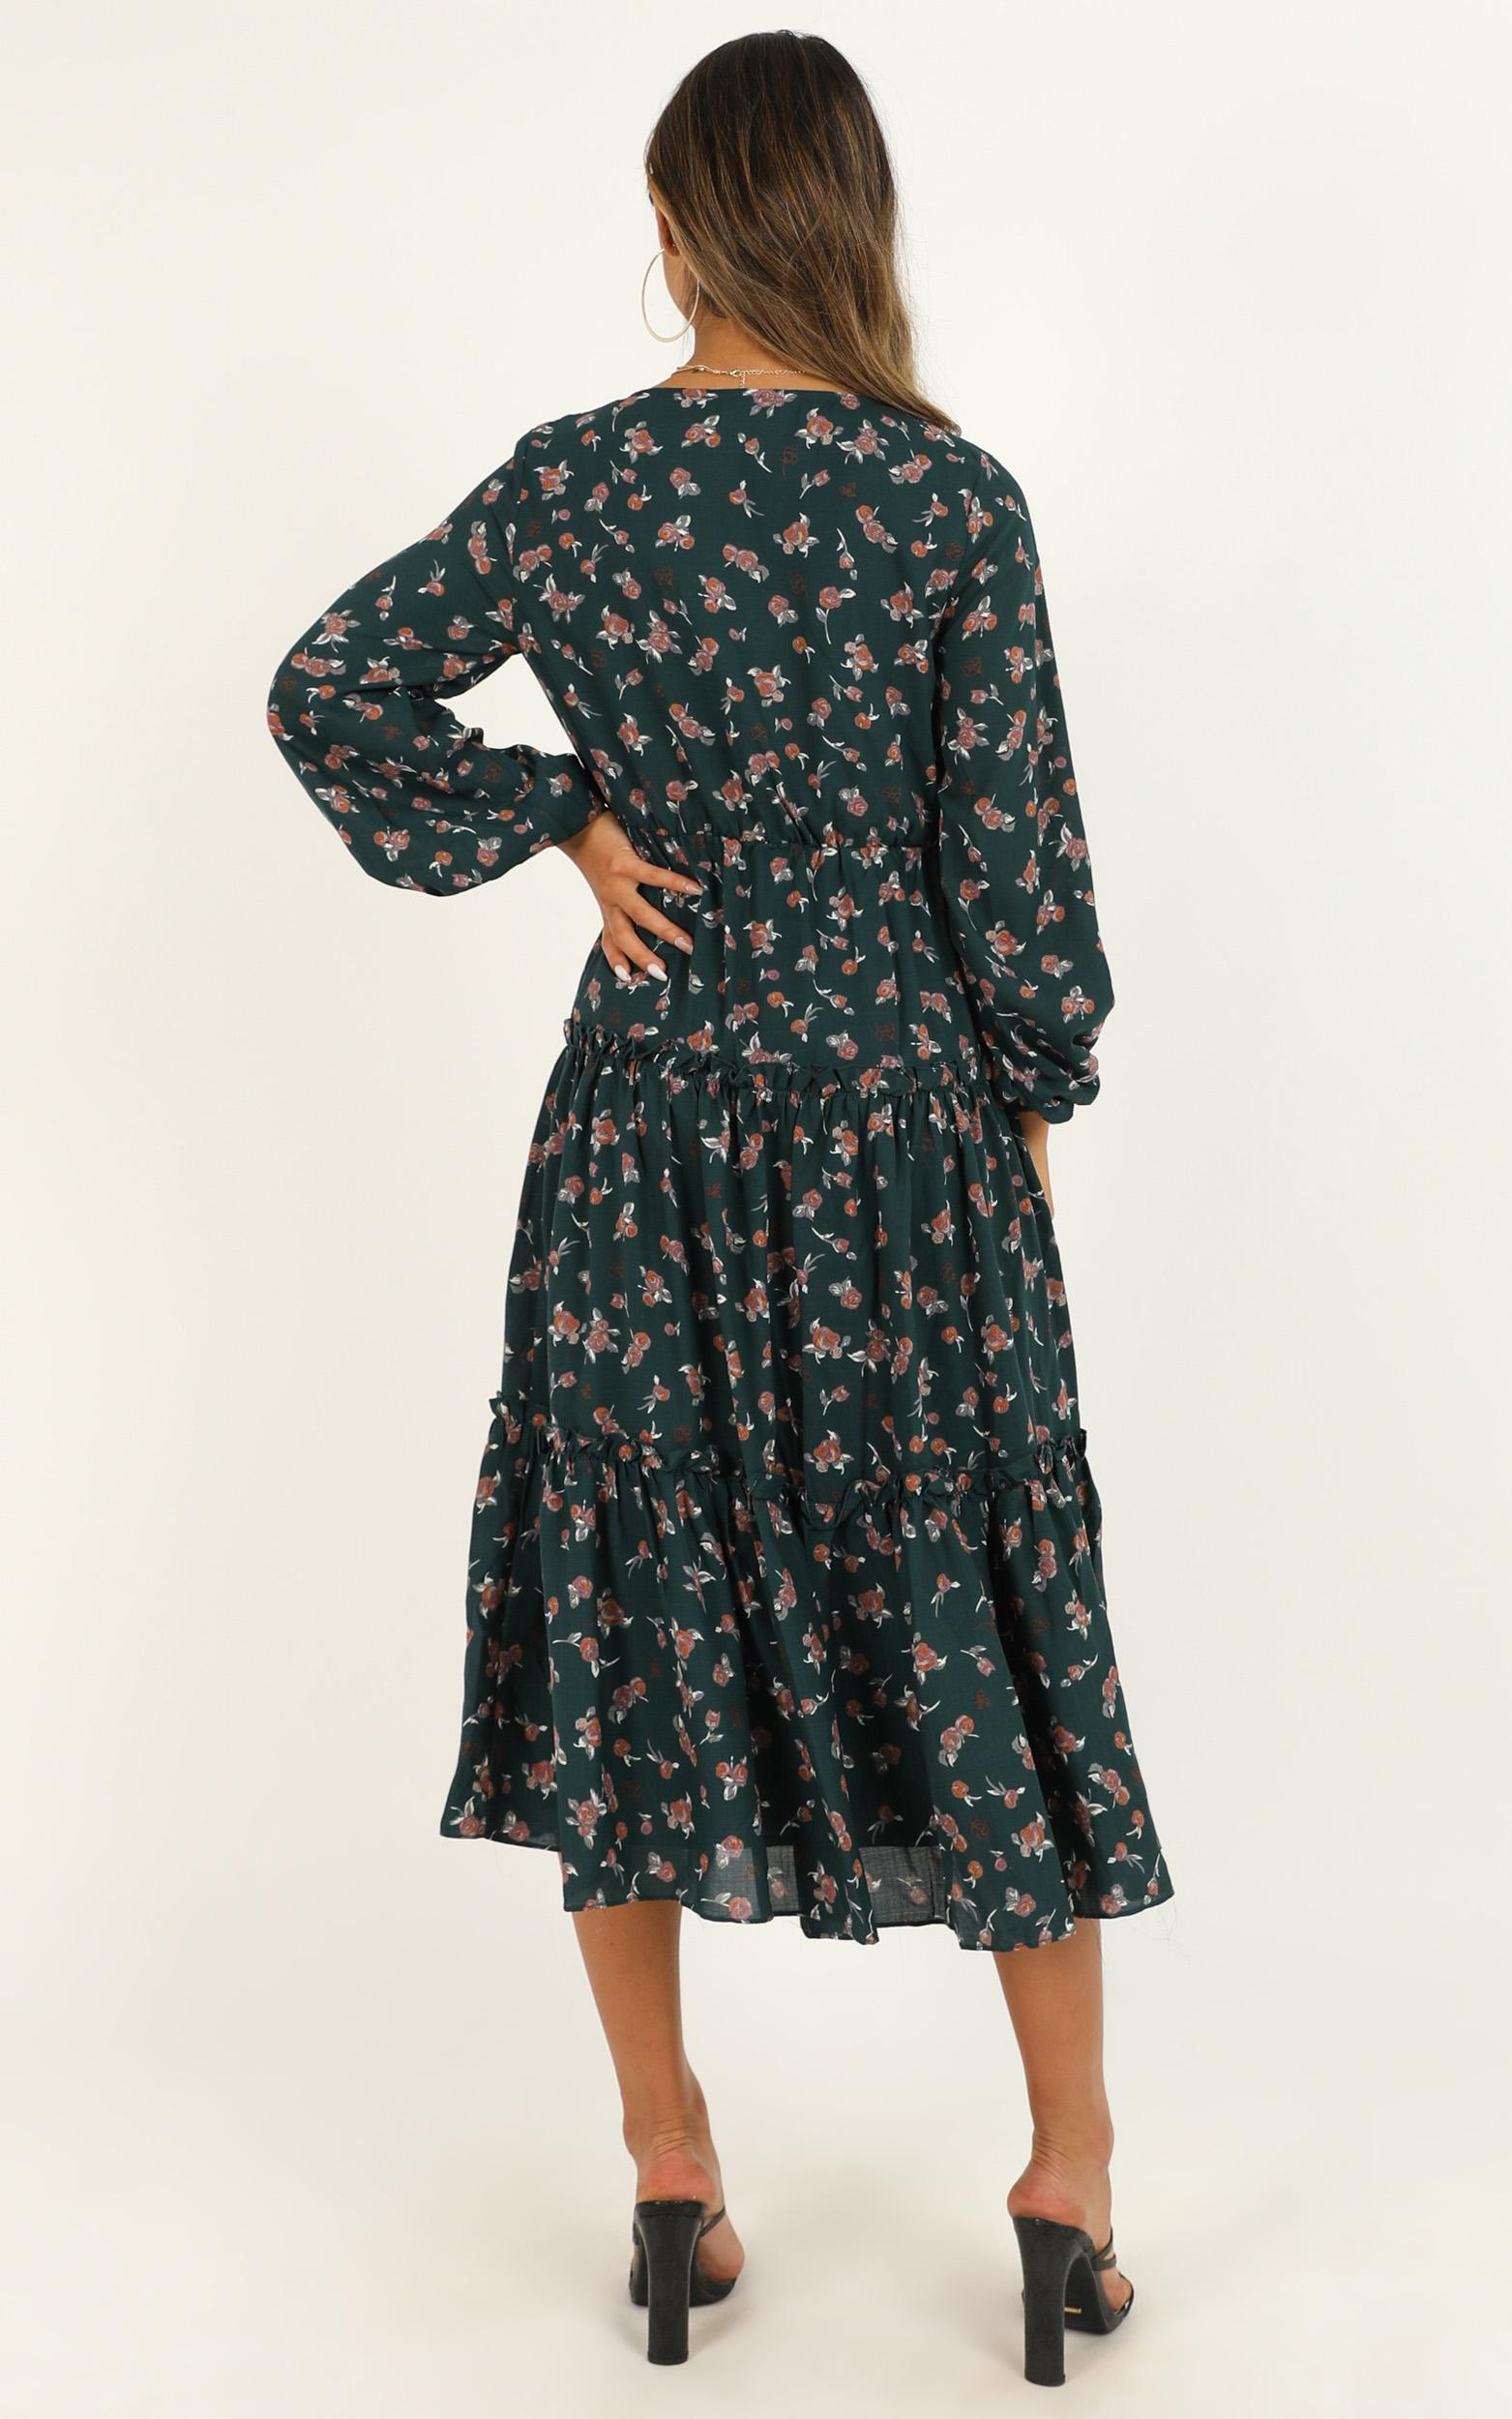 Down The Right Path Dress In Emerald Floral, Green, hi-res image number null